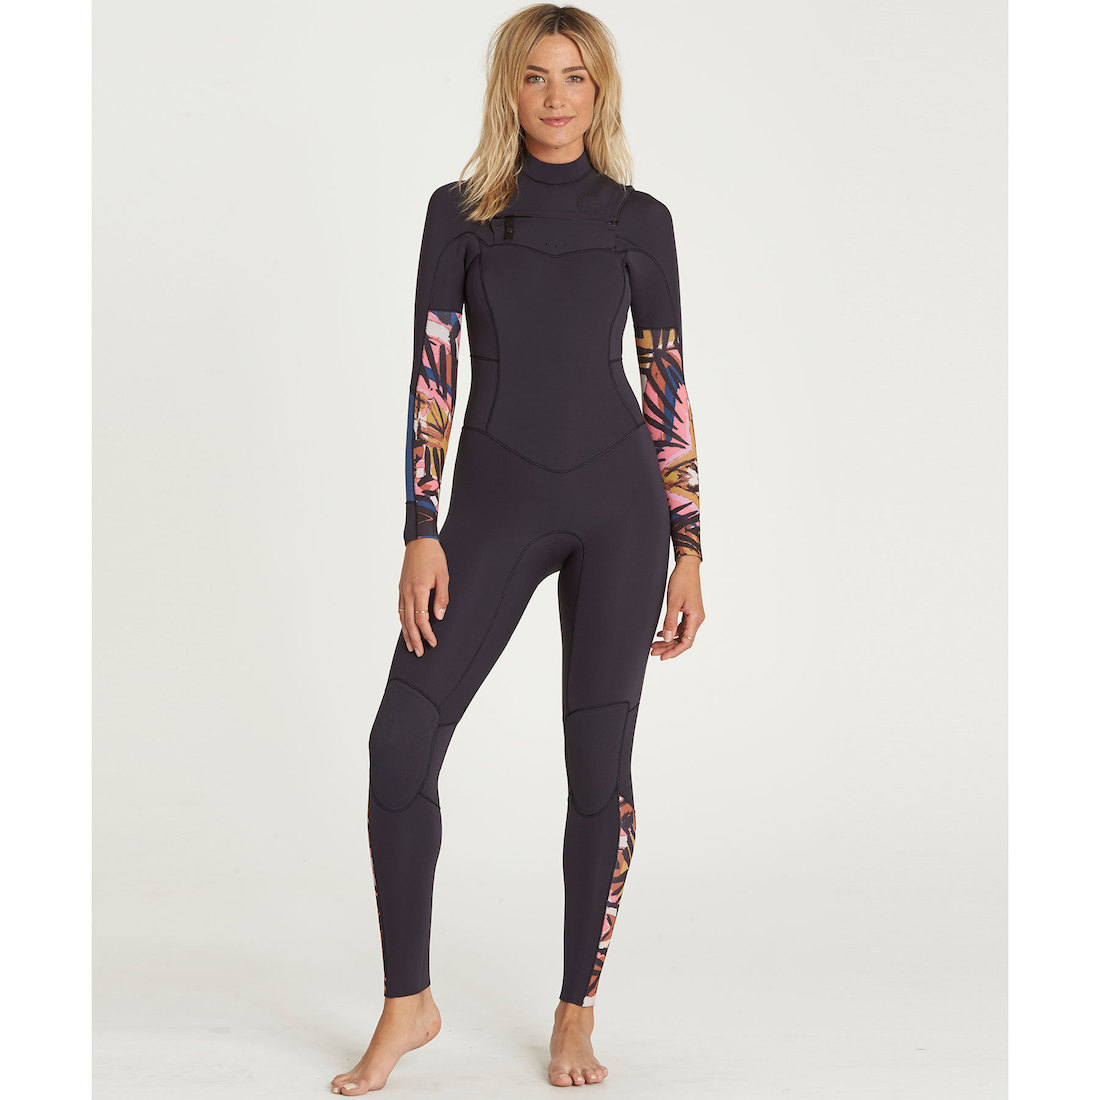 billabong tribal Ladies womens girls winter wetsuit surf surfing 5 4 5 4mm e46c654f2f5